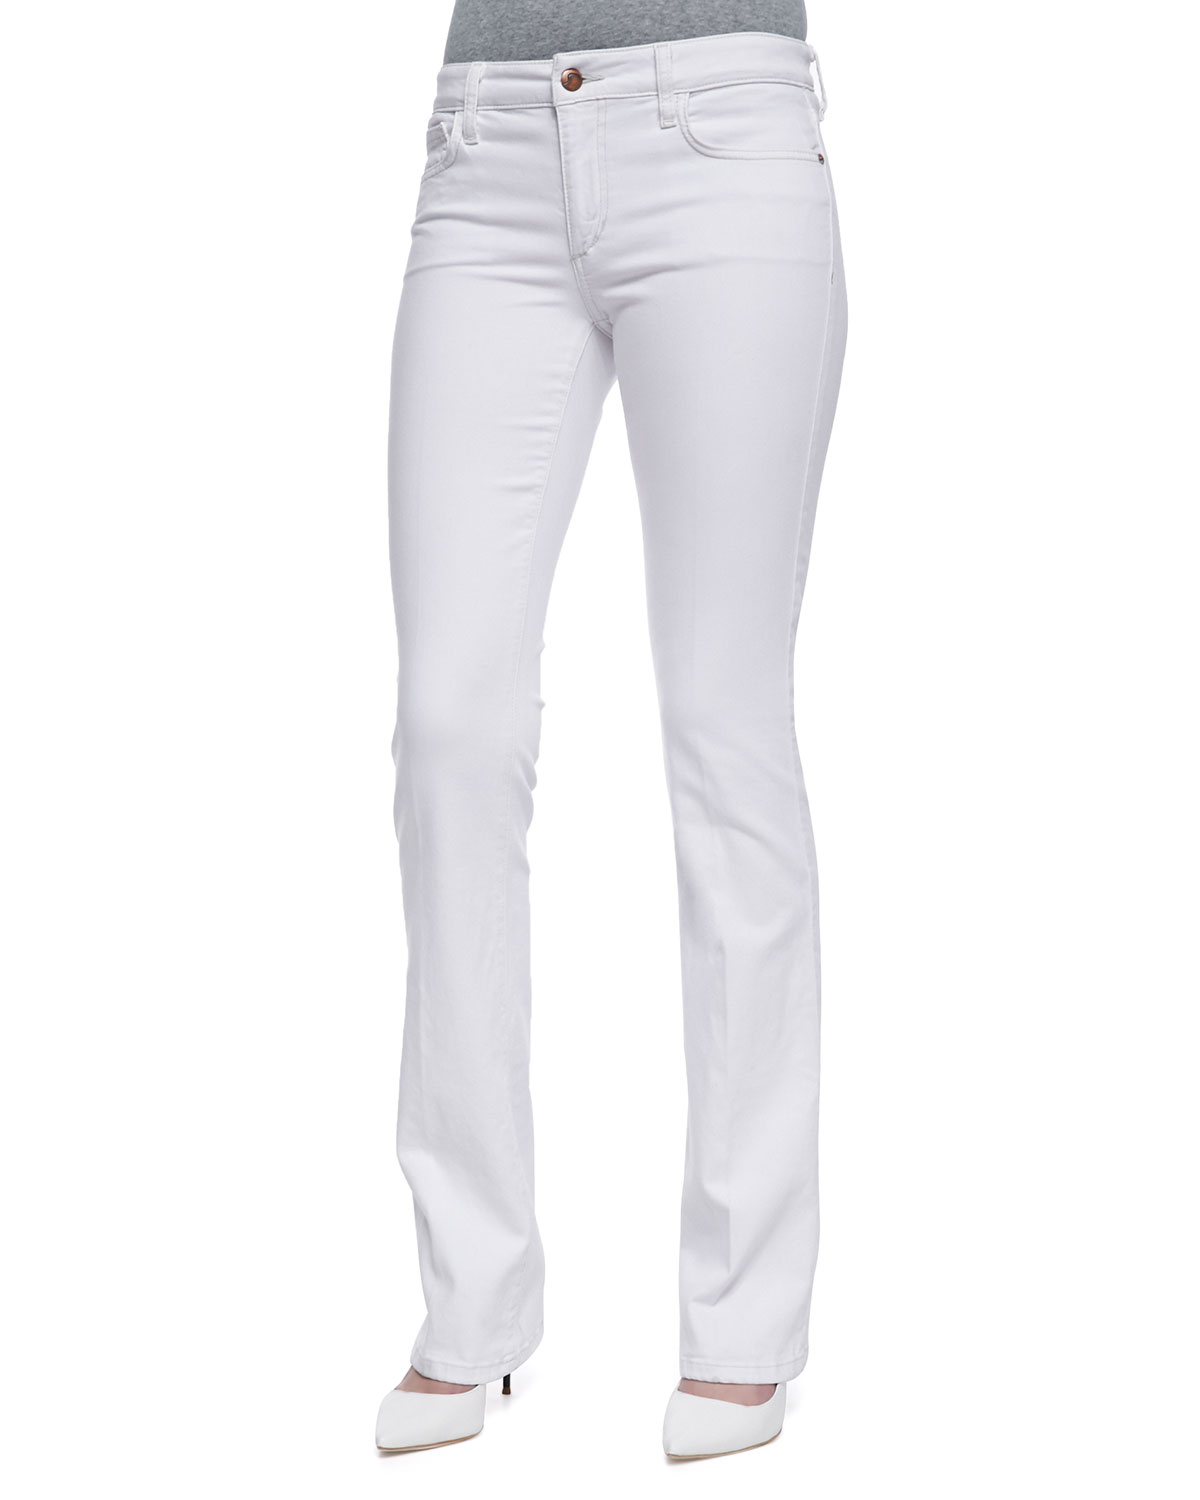 KUT $89 Womens New White Boot Cut, High Waist Casual Jeans S B+B. Sold by BOBBI + BRICKA. $ $ International Concepts Petite Size Jeans 18WP Slim Tech Bootcut Jeans Blue. Sold by Phoenix Trading Company. $ $ Belle by Kim Gravel Petite Size Jeans 8P Pull-On Elastic Waist Boot Cut Blue.